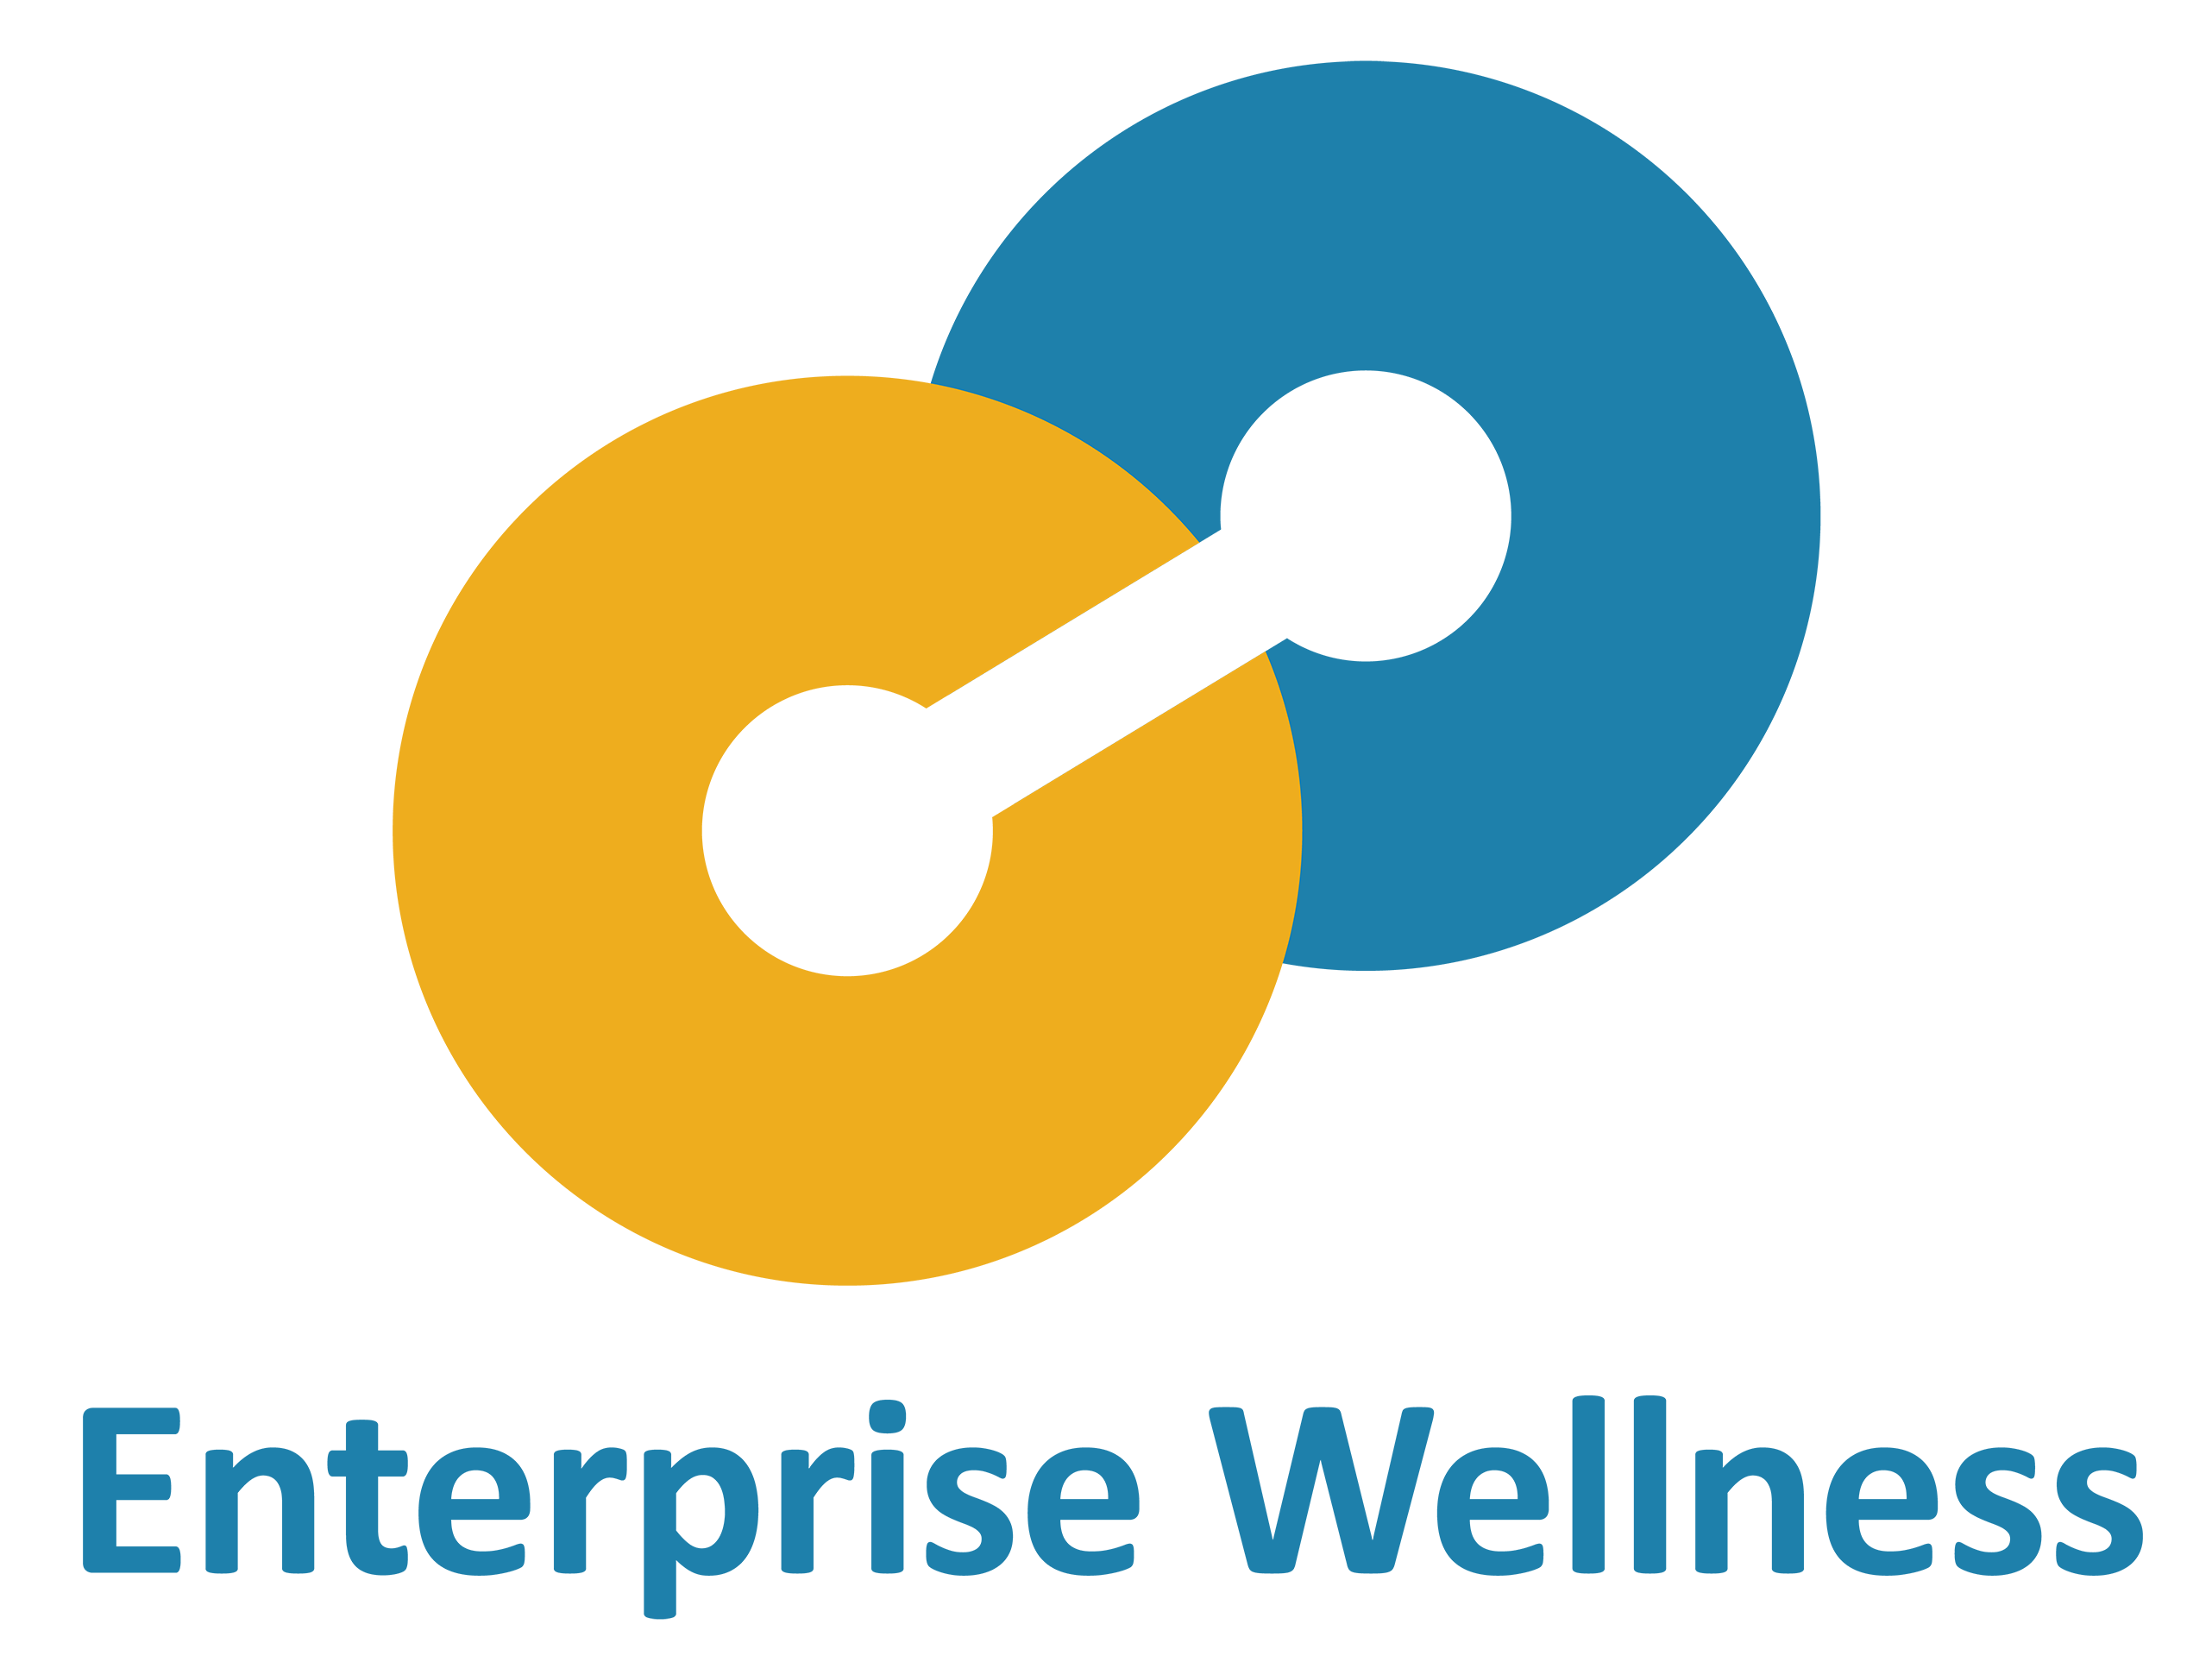 Enterprise Wellness